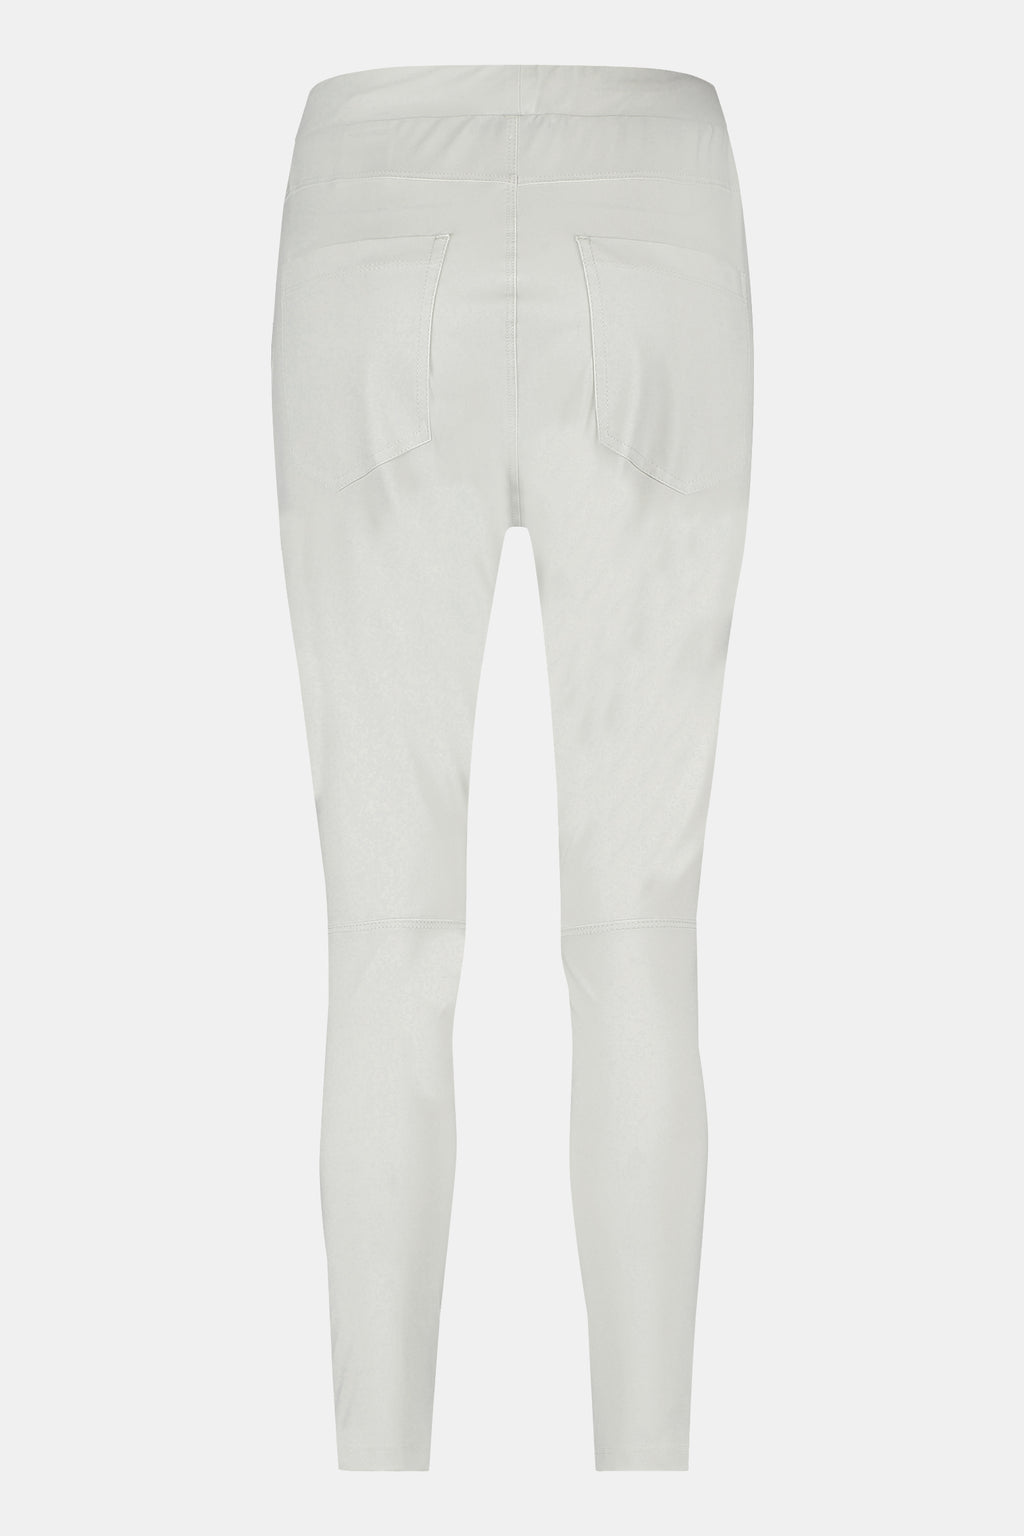 PENN&INK N.Y TROUSERS (S21N943) FOGGY BACK